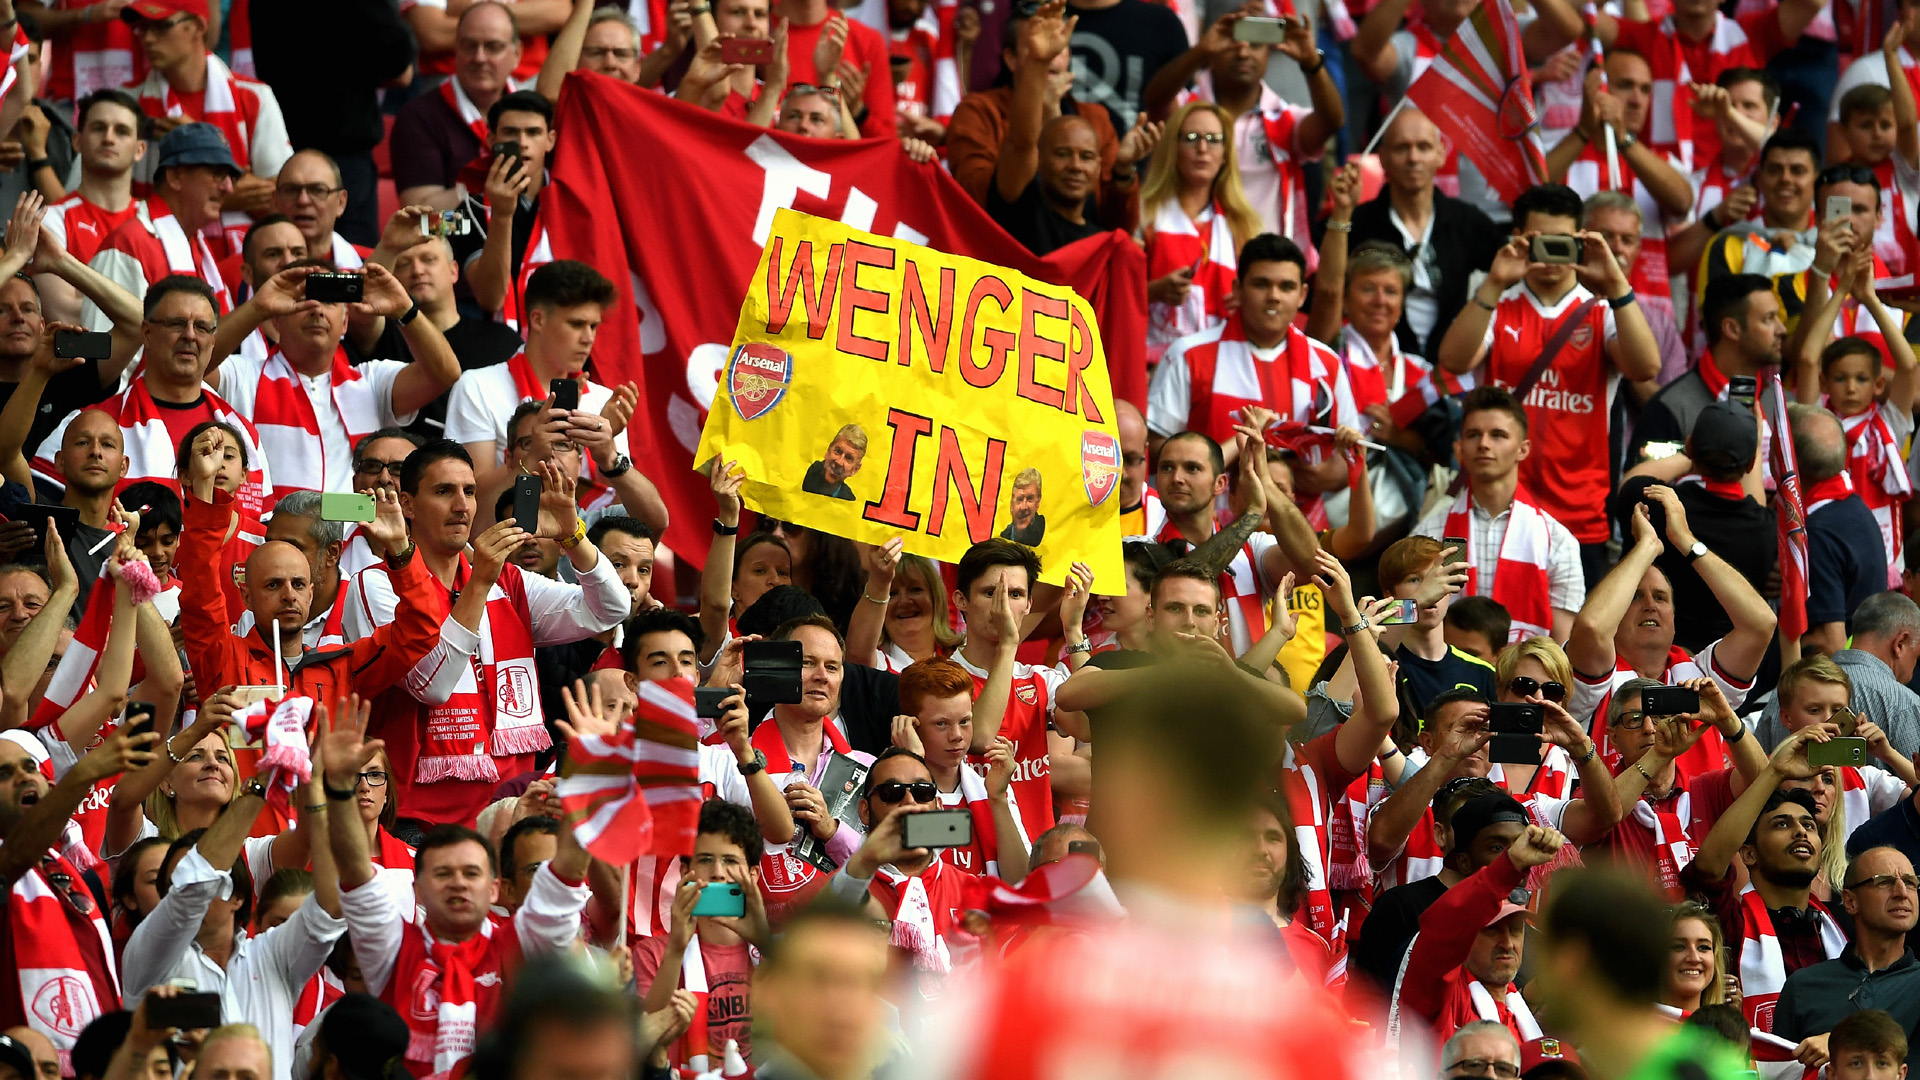 Torcida do Arsenal que pede que Wenger fique (Photo by Laurence Griffiths/Getty Images)